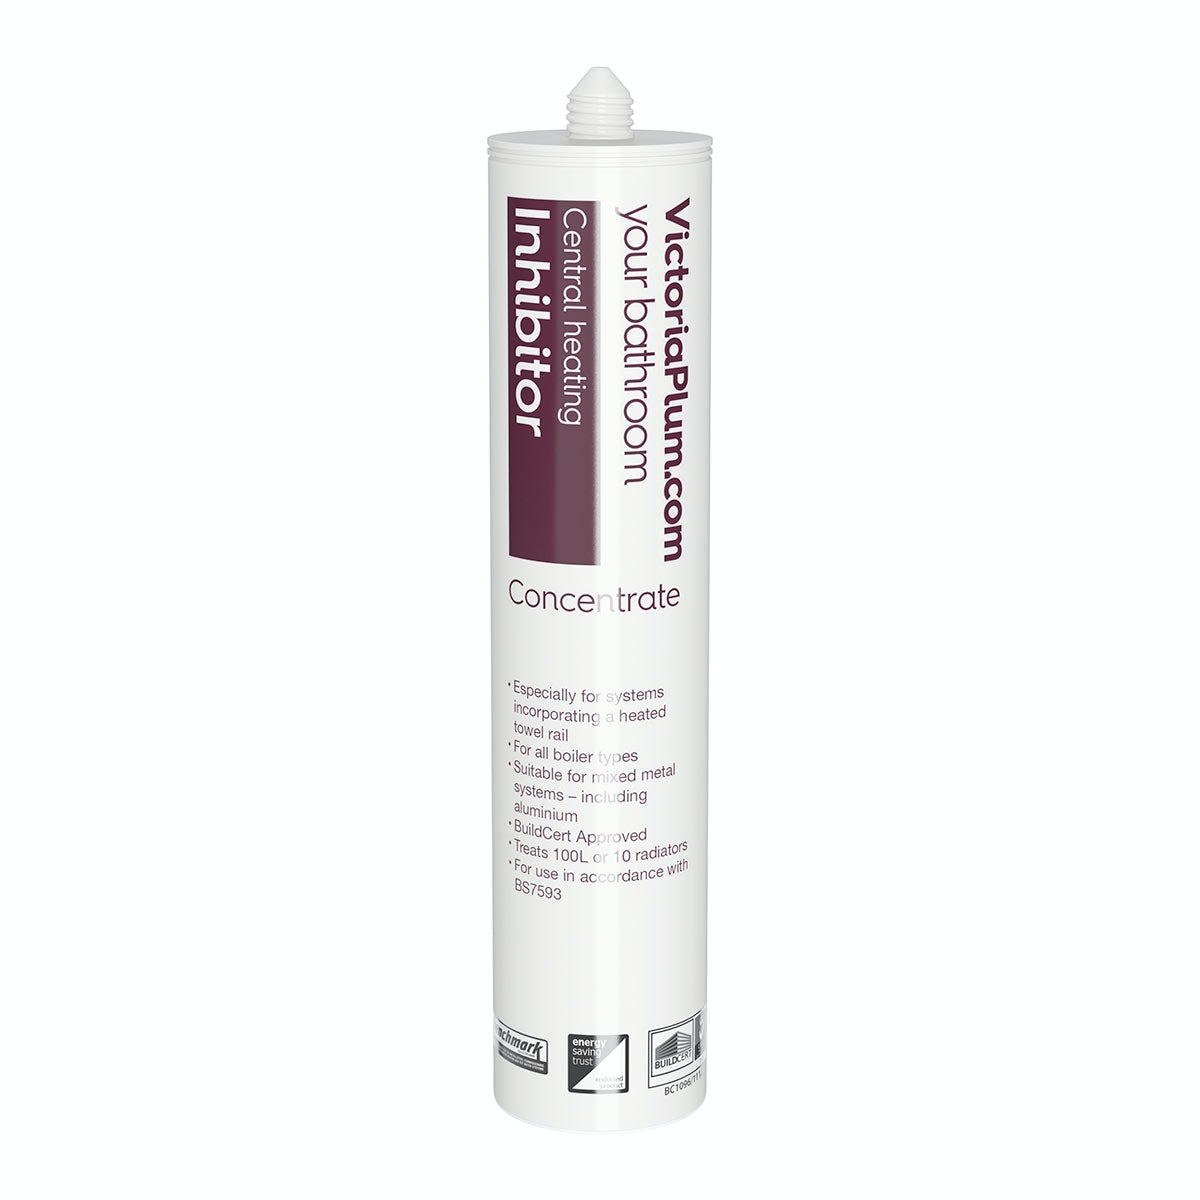 Central heating inhibitor concentrate